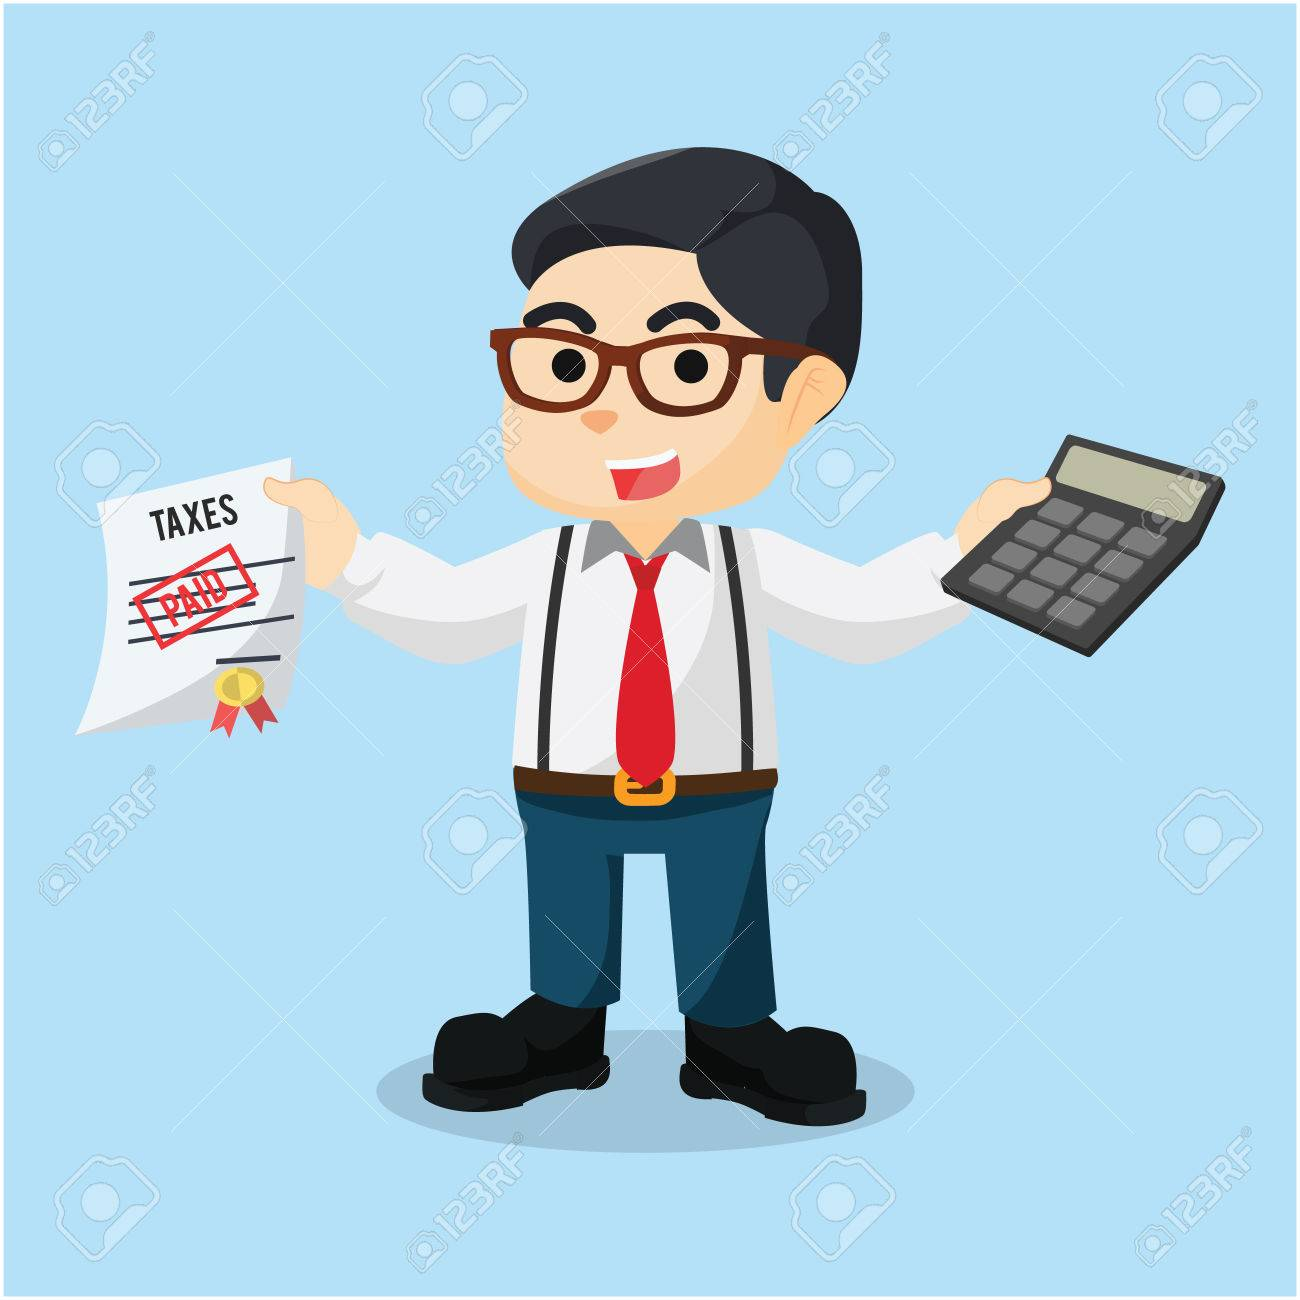 accountant holding calculator and paid taxes - 61667618